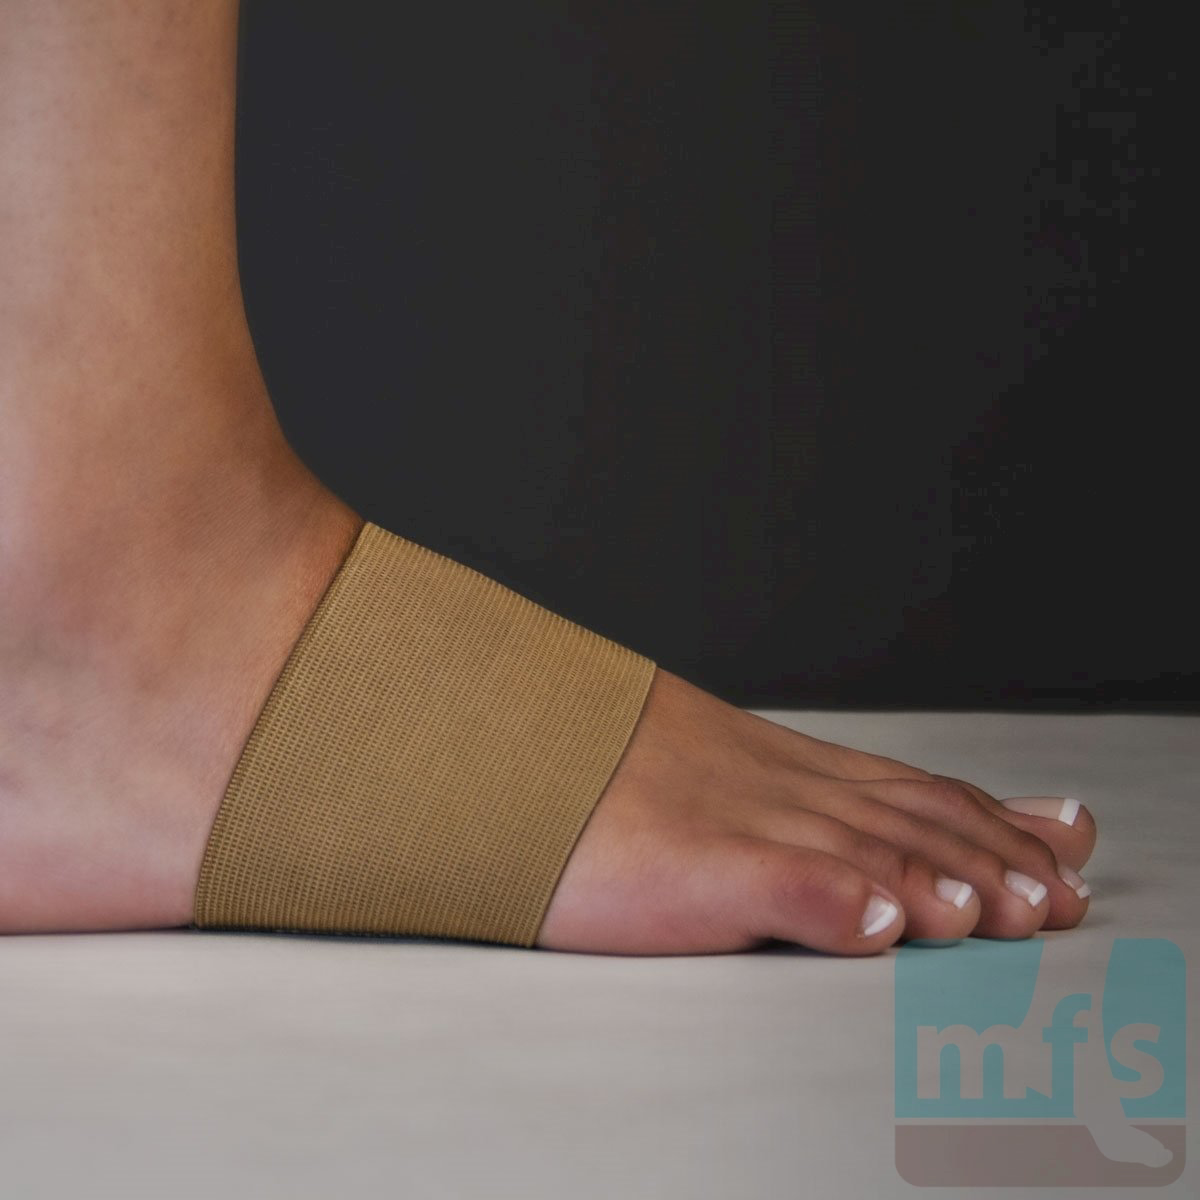 Arch Binder With Metatarsal Pad